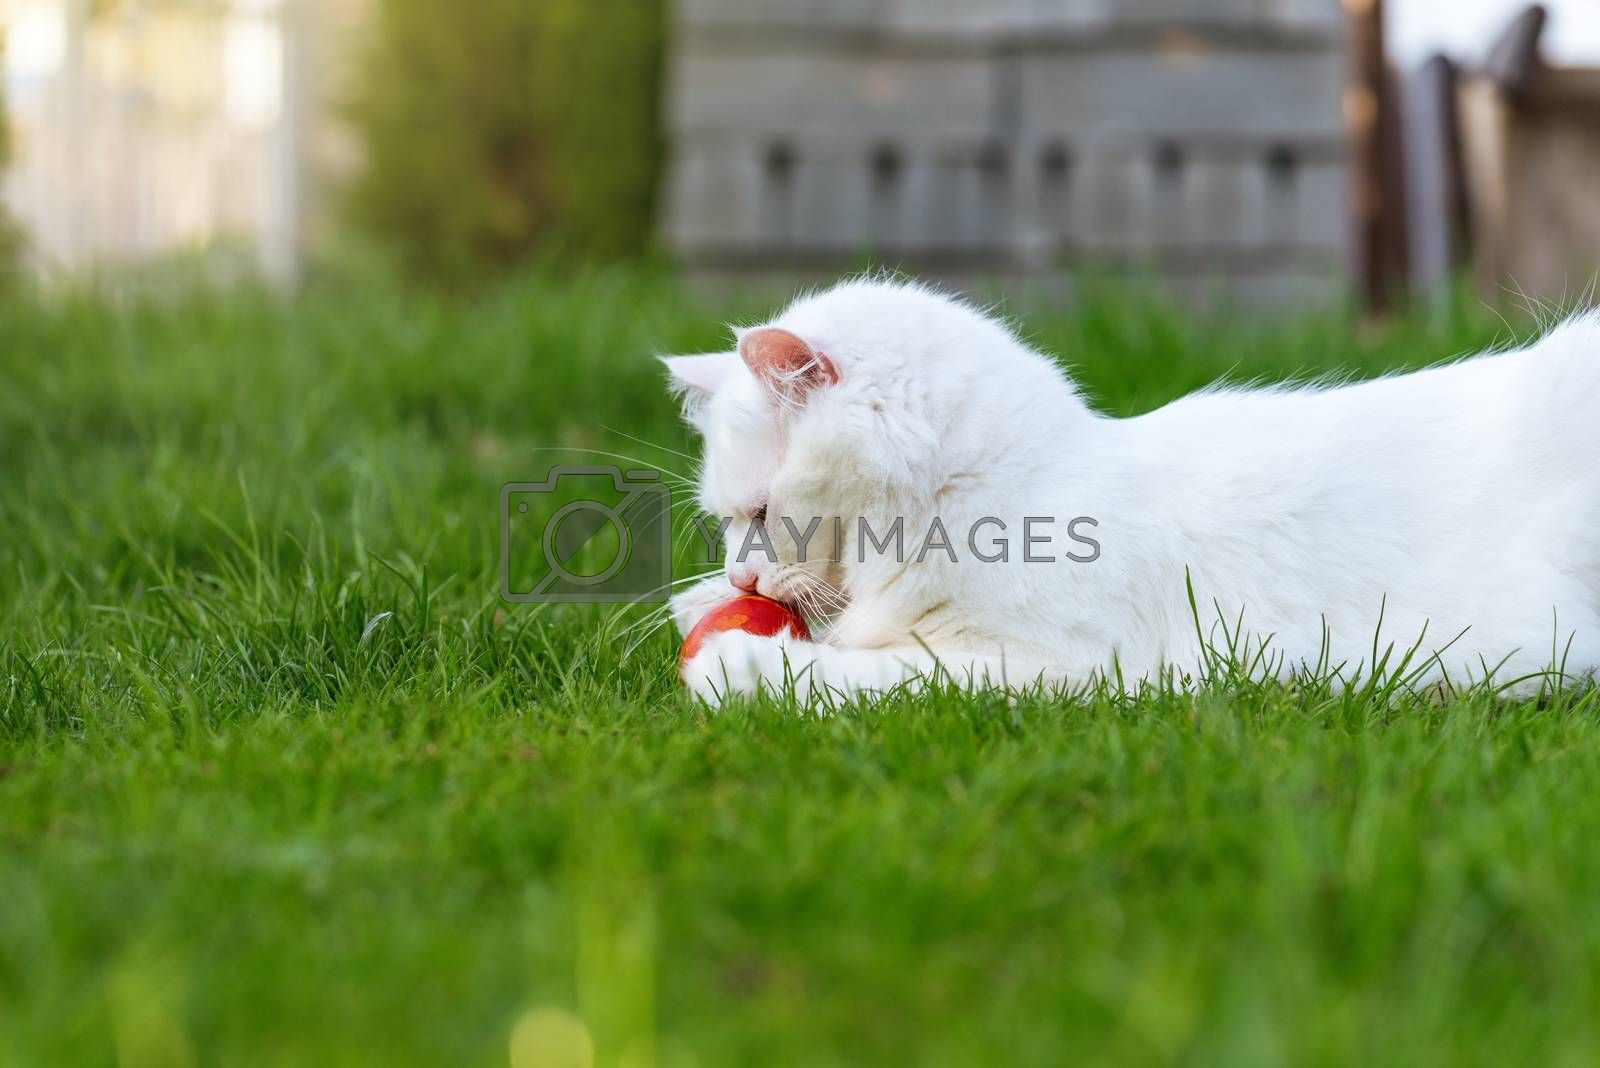 The cat plays with the red egg. by ba11istic